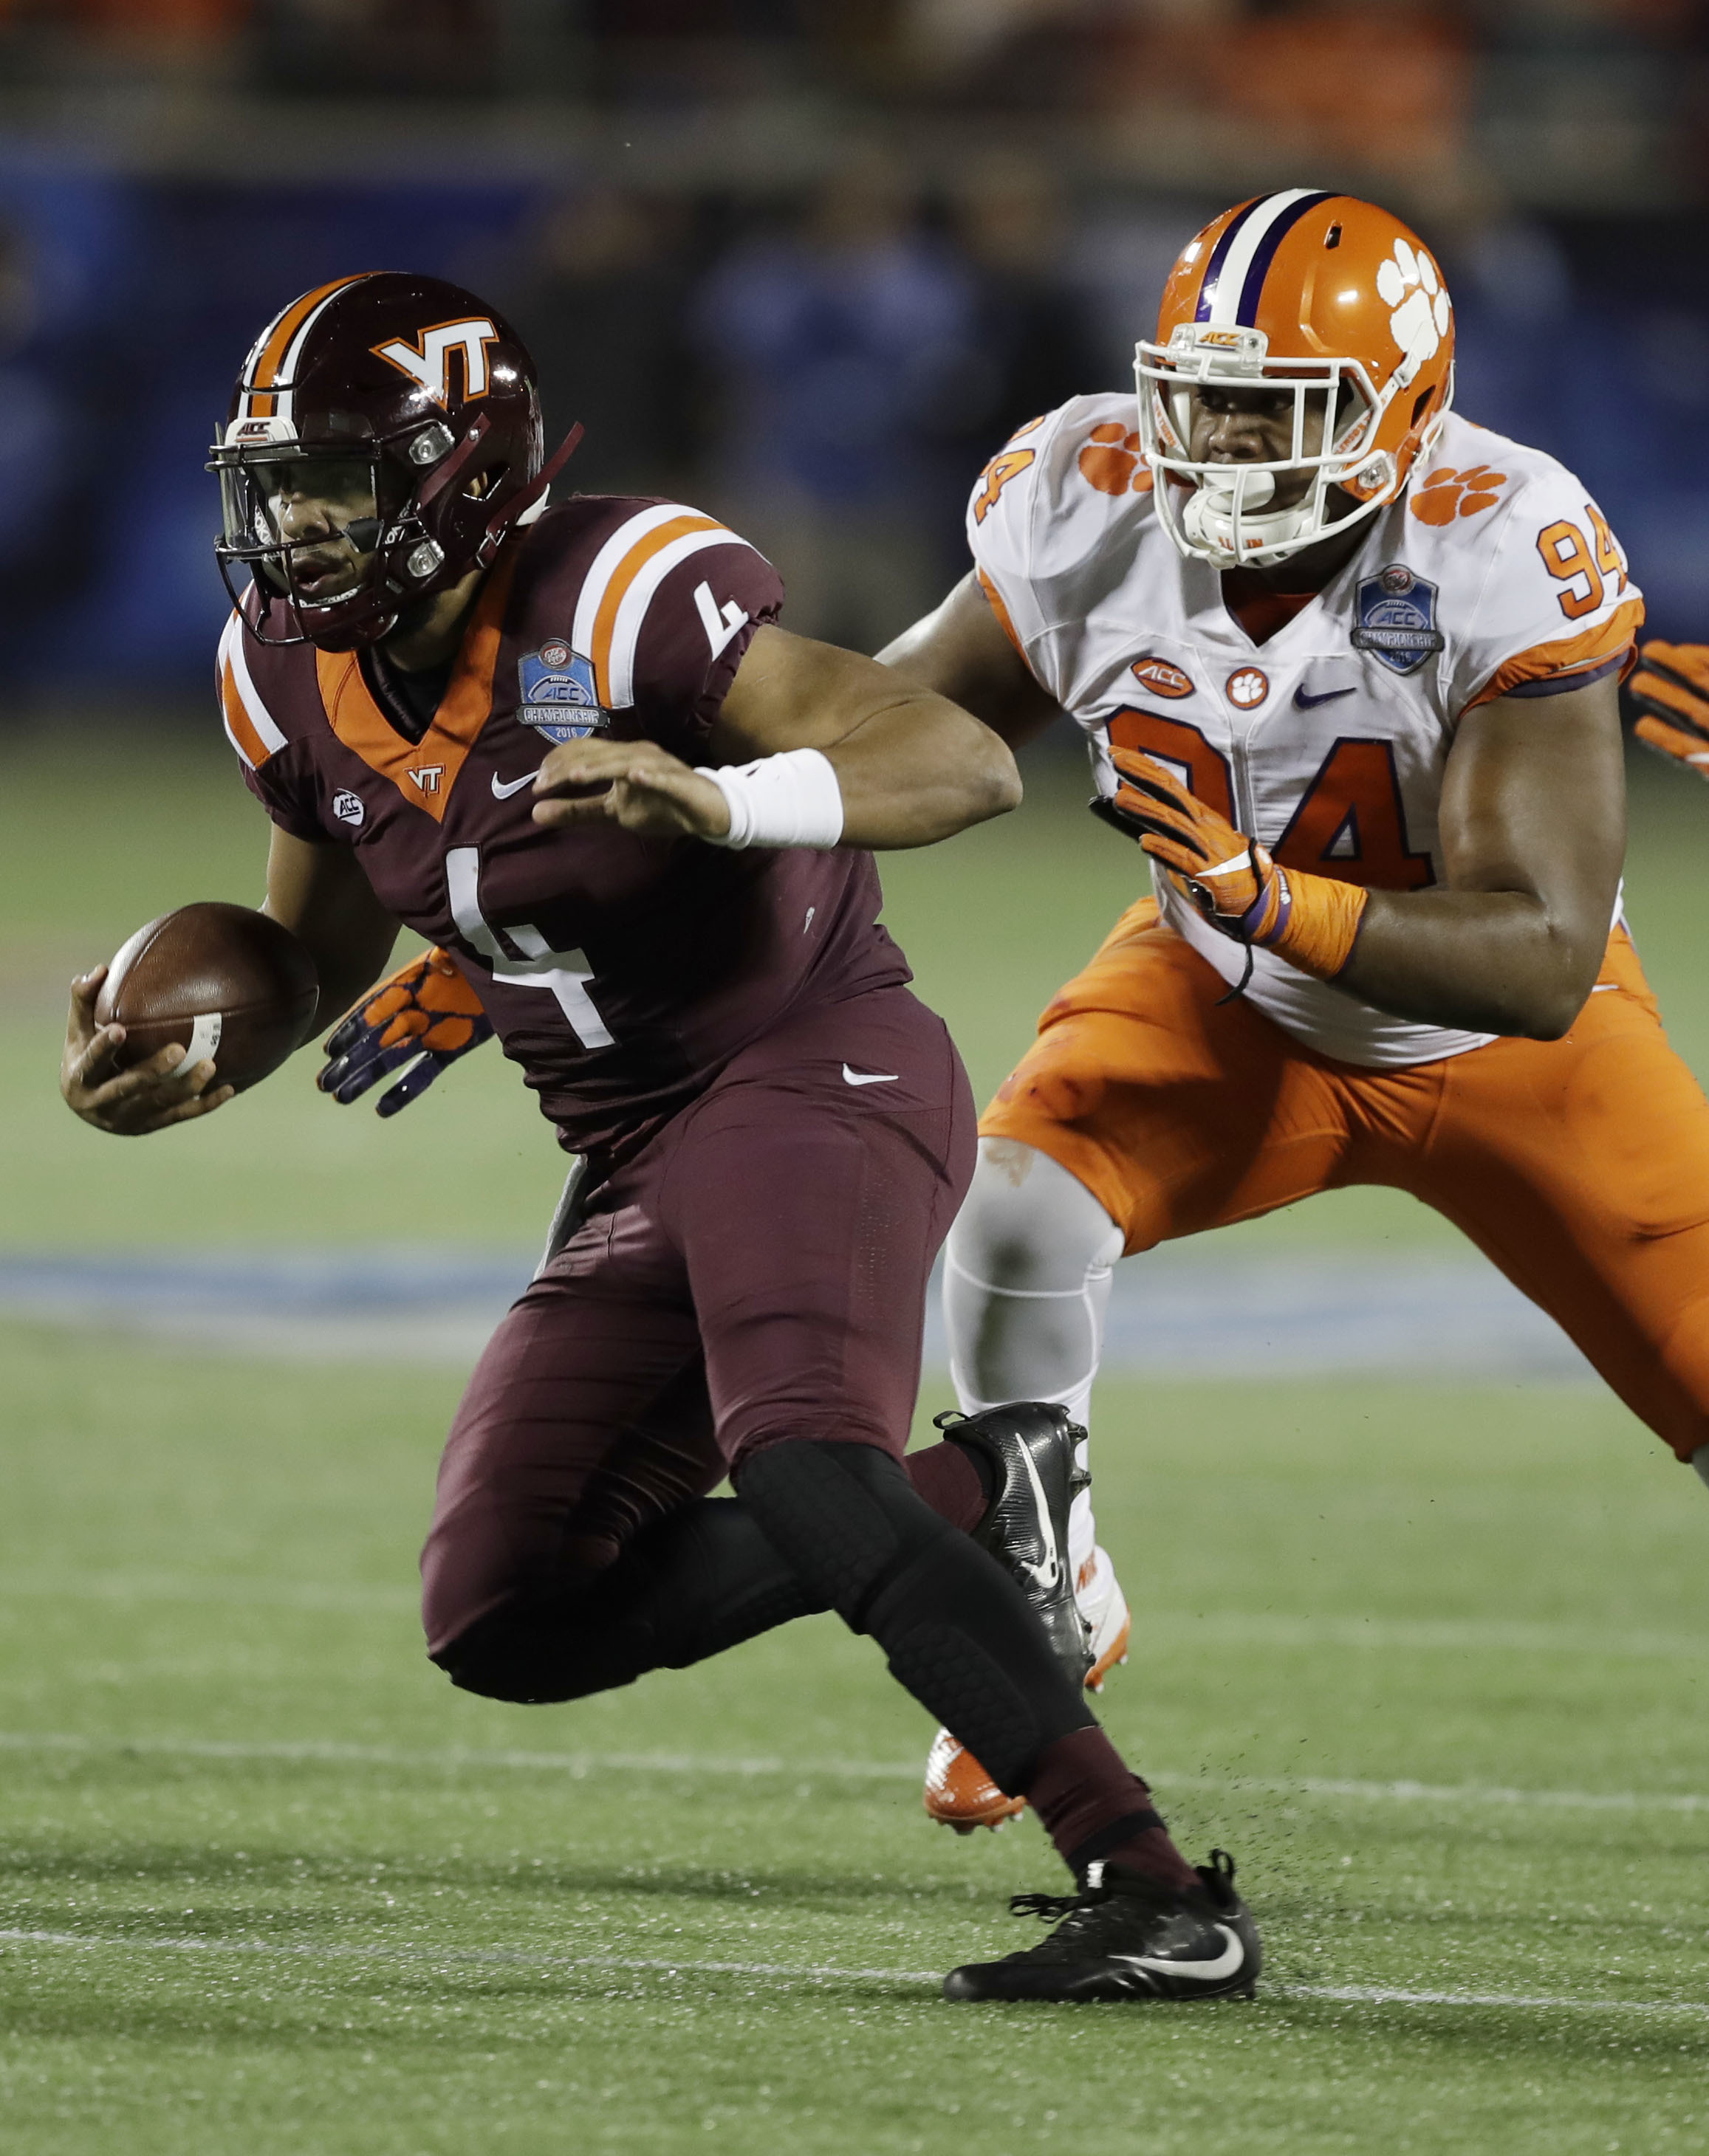 Virginia Tech quarterback Jerod Evans (4) runs the ball ahead of Clemson defensive tackle Carlos Watkins (94), during the first half of the Atlantic Coast Conference championship NCAA college football game, Saturday, Dec. 3, 2016, in Orlando, Fla. (AP Pho